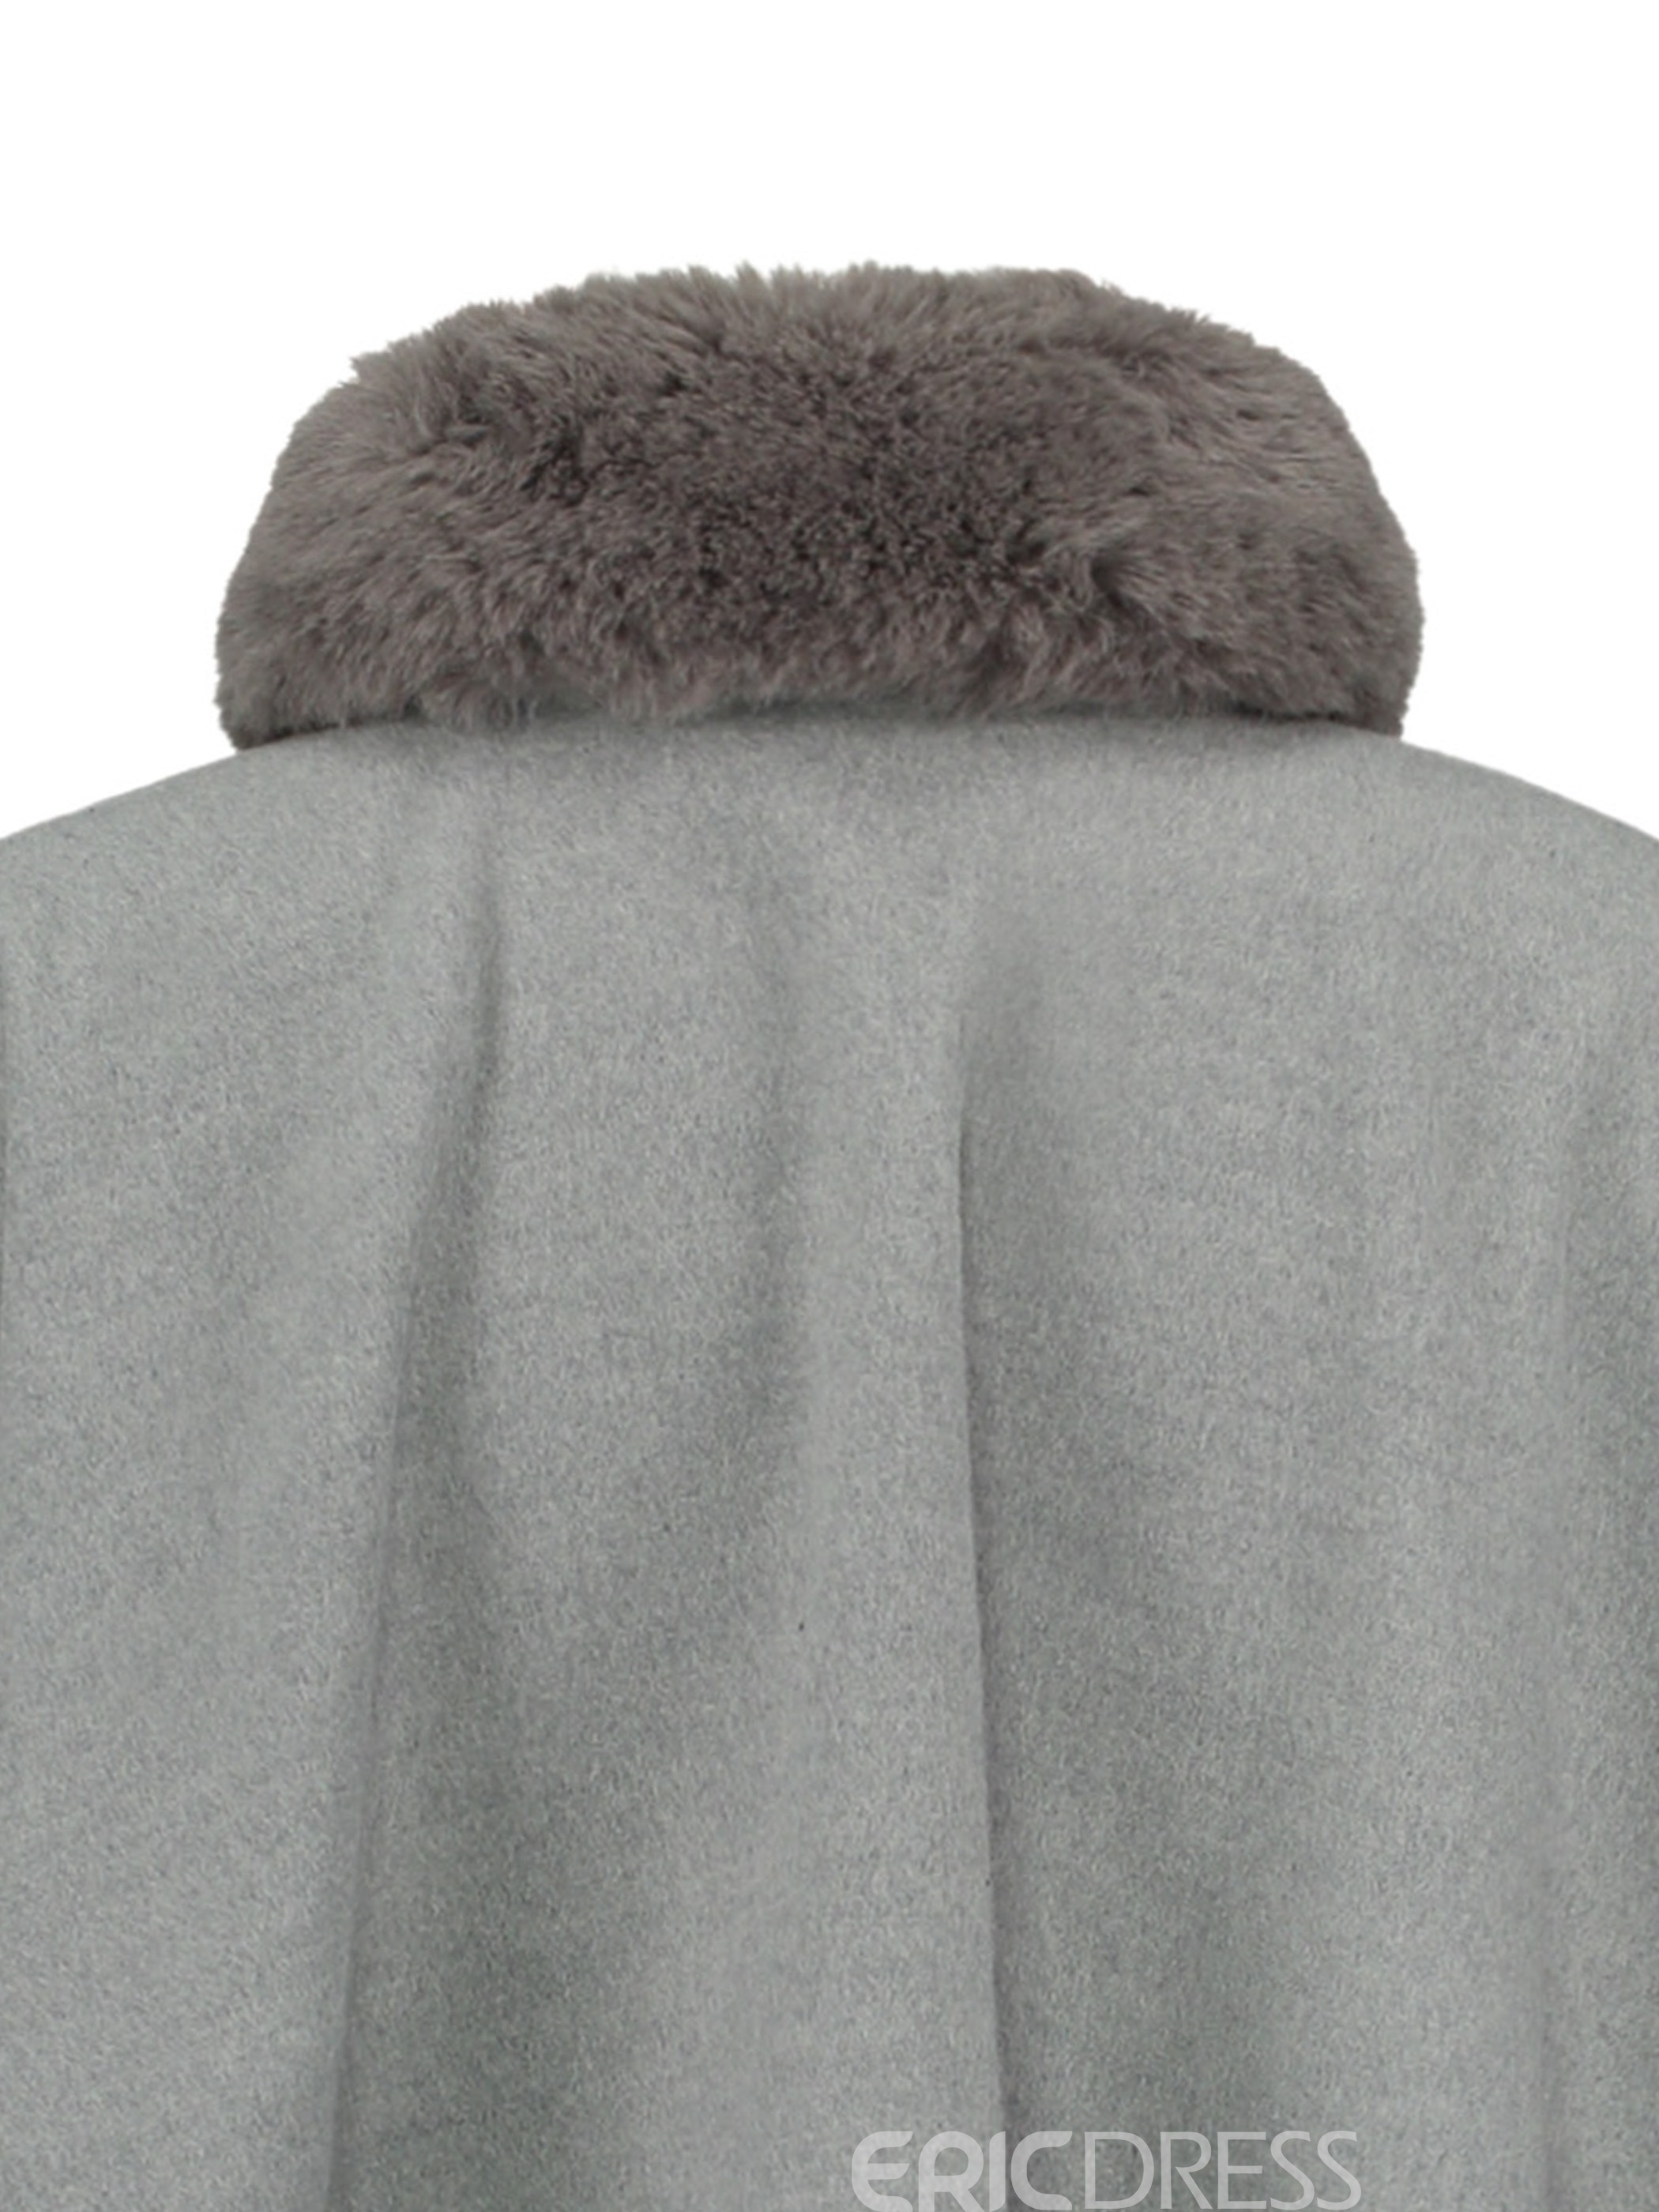 Ericdress Plain One Button Fur Cape